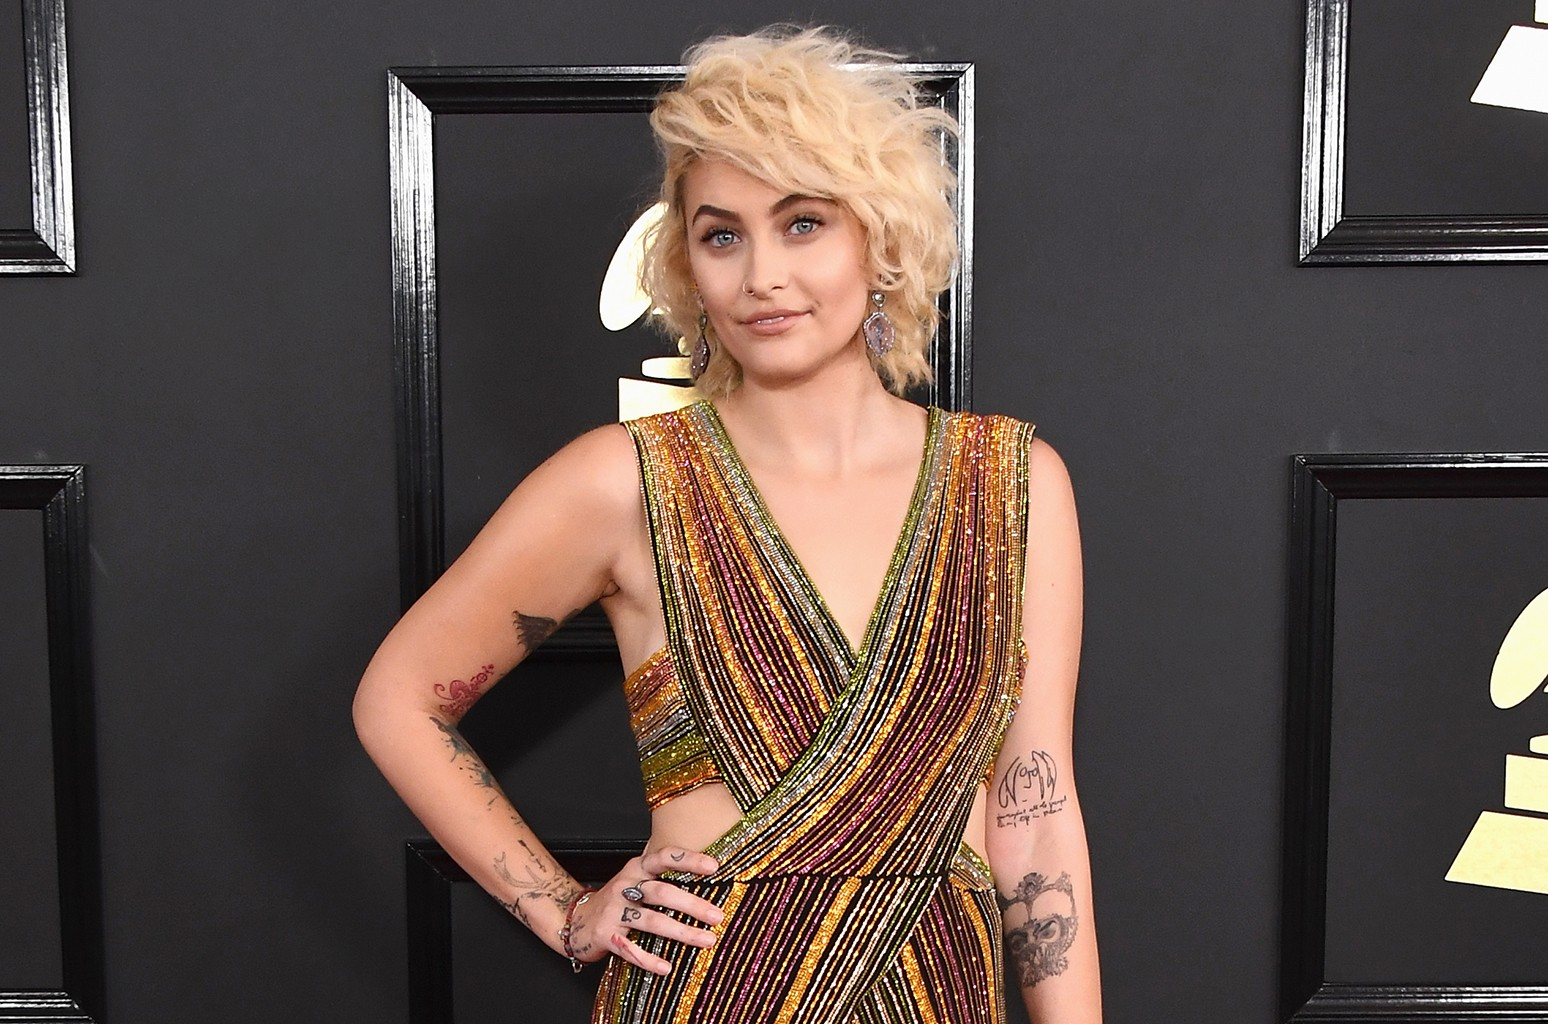 Paris Jackson attends The 59th Grammy Awards at Staples Center on Feb. 12, 2017 in Los Angeles.